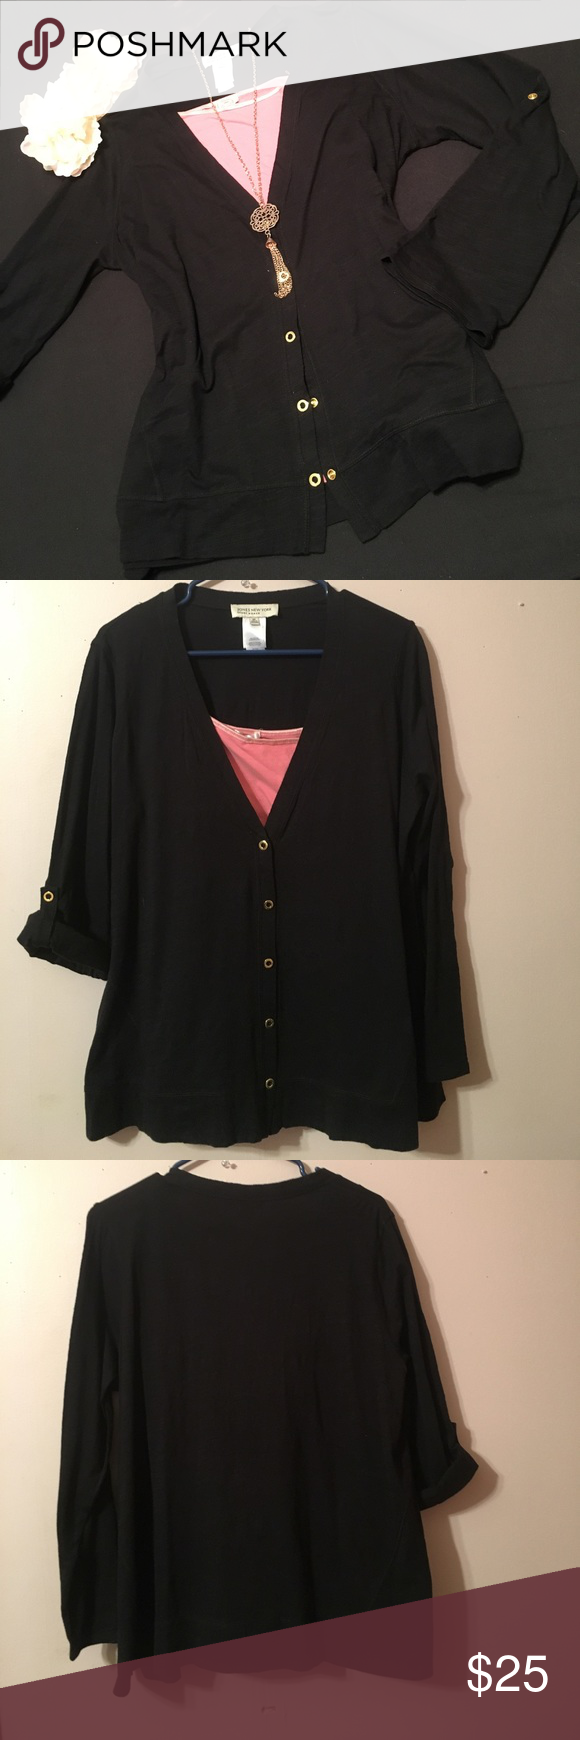 ❤️Just In NWOT❤ black cardigan w/ gold buttons | Size 10